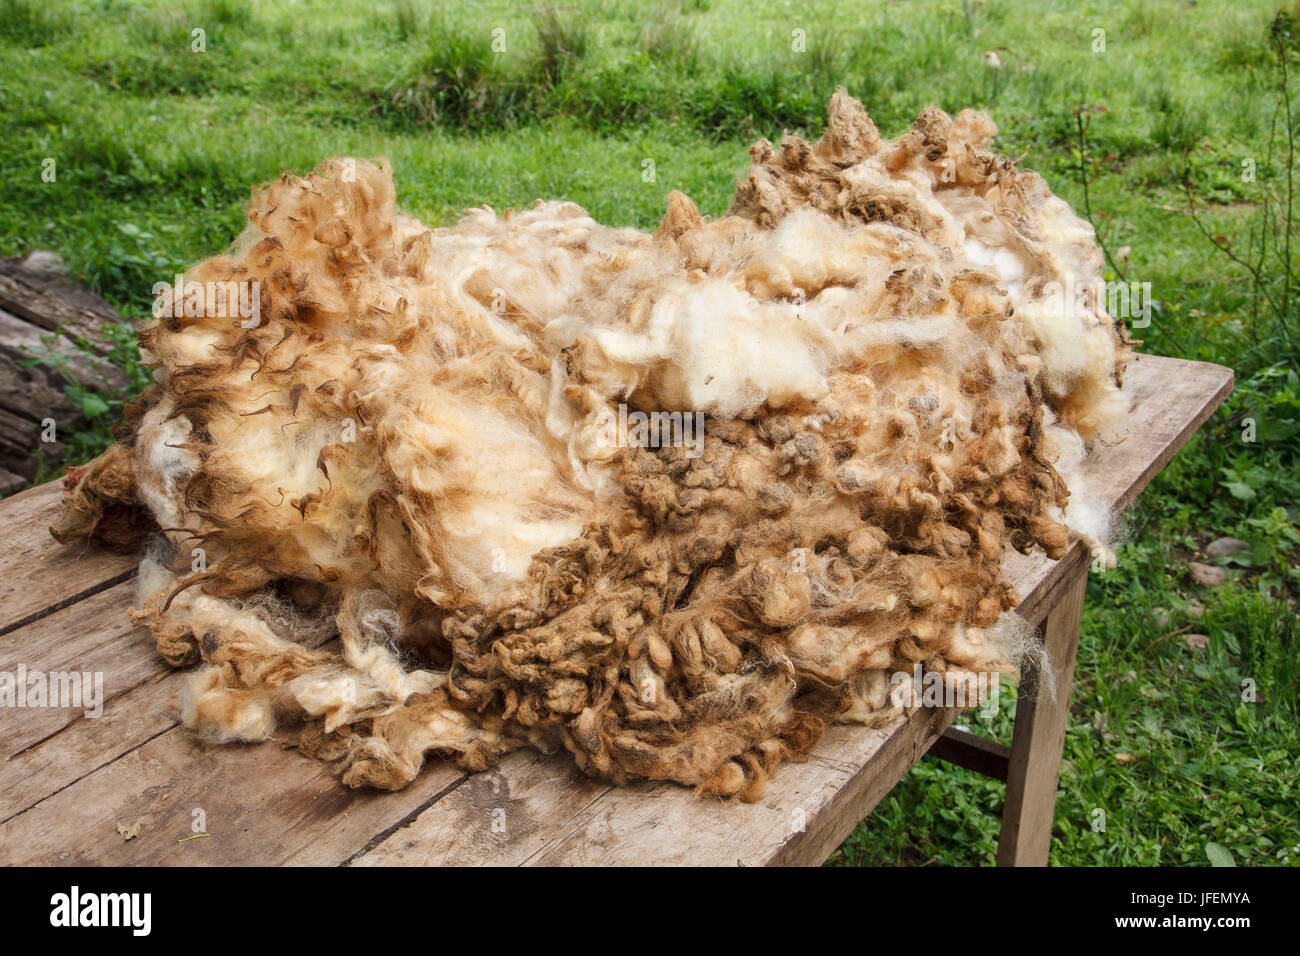 Chile, Araucania, Temuco, Mapuche, Fairly Trade, textiles, filthy sheep's wool - Stock Image